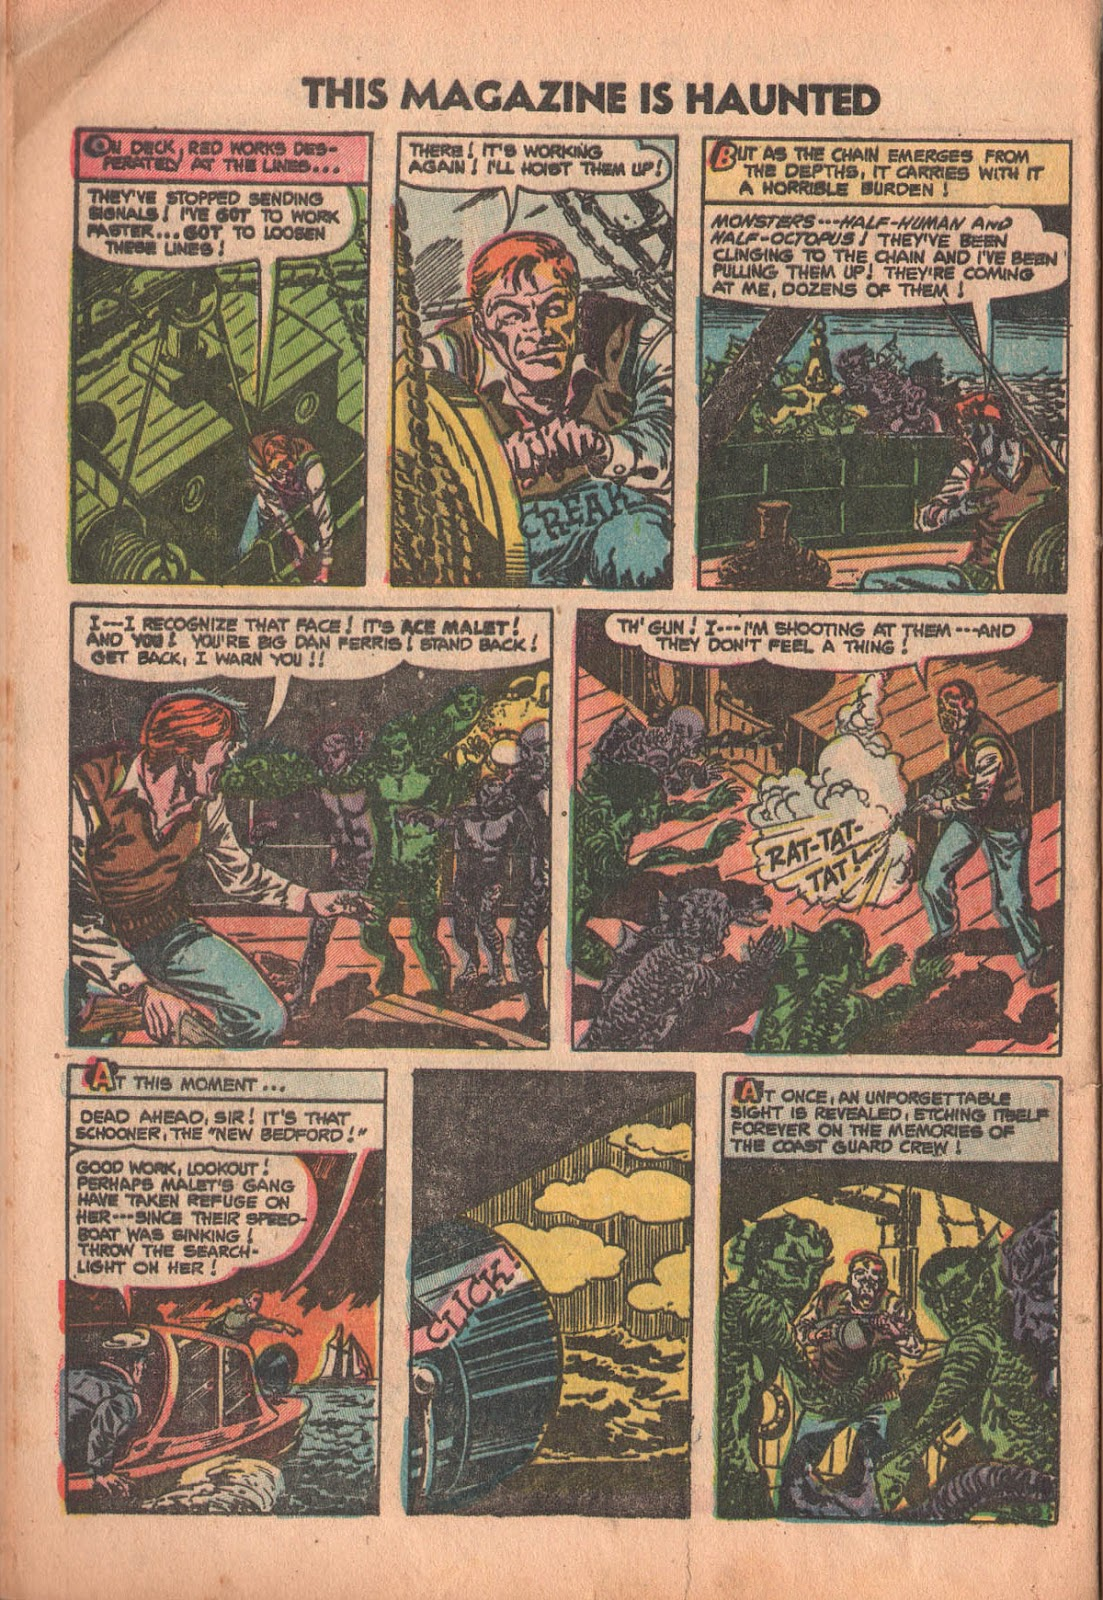 Read online This Magazine Is Haunted comic -  Issue #15 - 28